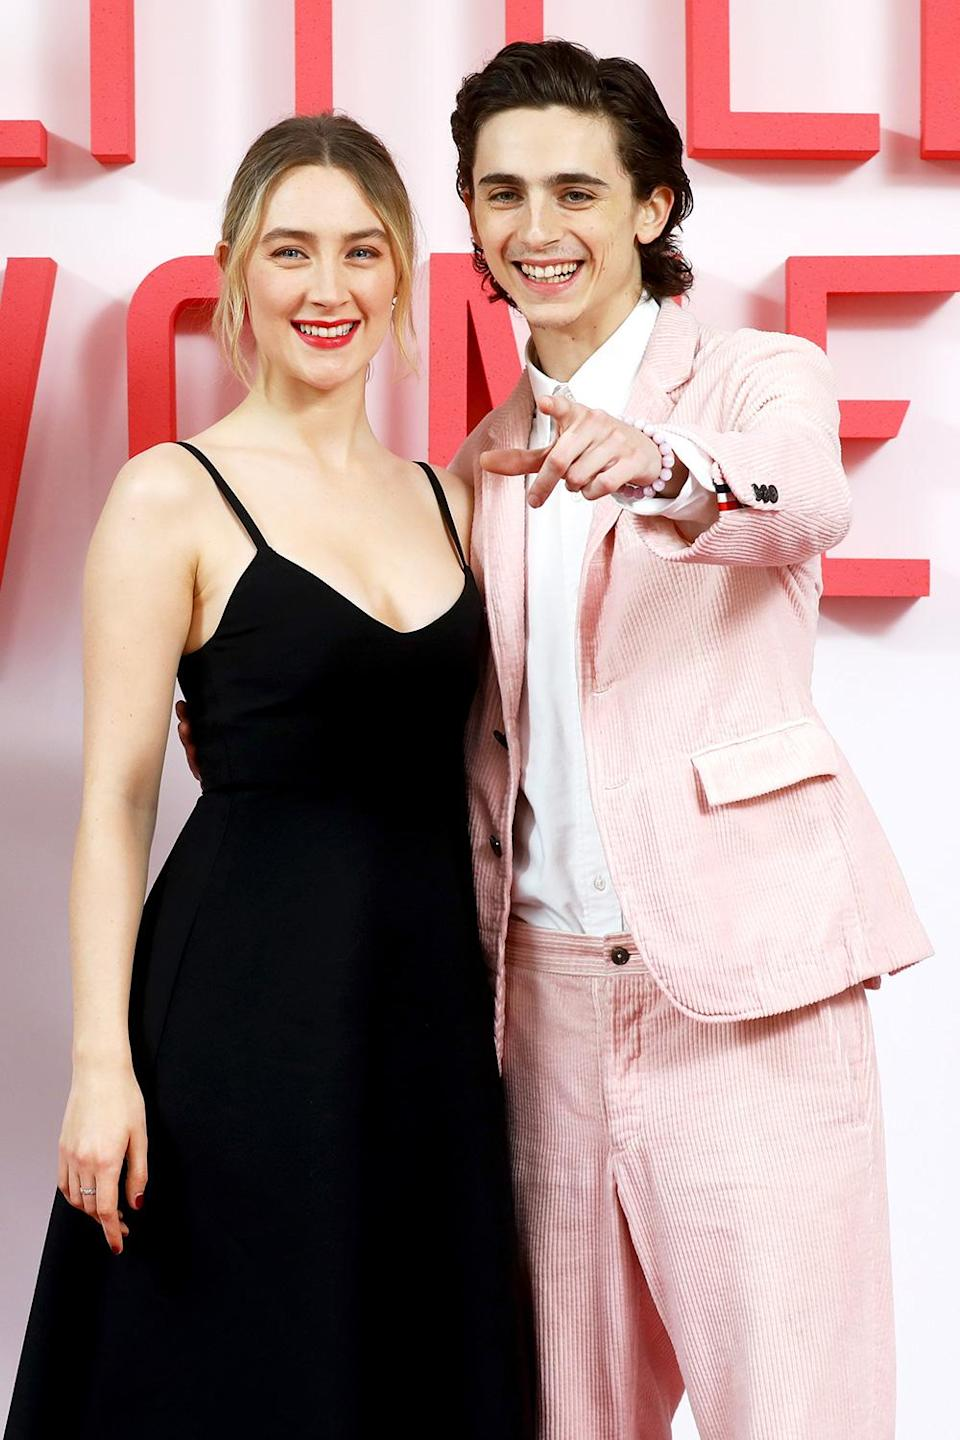 """<p>Chalamet's recurring onscreen love interest and offscreen close pal, Ronan (who starred opposite him in <i>Ladybird</i>, <i>Little Women</i> and the upcoming <i>The French Dispatch) </i>has an affectionate nickname for her beloved costar: """"Pony,"""" she told the <a href=""""https://www.nytimes.com/2018/01/31/arts/saoirse-ronan-timothee-chalamet-lady-bird-call-me-by-your-name.html"""" rel=""""nofollow noopener"""" target=""""_blank"""" data-ylk=""""slk:New York Times"""" class=""""link rapid-noclick-resp""""><i>New York Times</i></a>, """"Because he'll come up to [<i>Little Women</i> and <i>Ladybird</i> director Greta Gerwig] and me and nuzzle us.""""</p> <p>""""I always knew he was very special. And he was very magnetic as an actor. We've always just felt very comfortable with one another,"""" Ronan said to <a href=""""https://www.dazeddigital.com/film-tv/article/50451/1/saoirse-ronan-talks-timothee-chalamet-i-always-knew-he-was-very-special"""" rel=""""nofollow noopener"""" target=""""_blank"""" data-ylk=""""slk:Dazed"""" class=""""link rapid-noclick-resp""""><i>Dazed</i></a> of their chemistry. </p> <p>""""We're very different in the way we work and the kind of performances that we give, and that really excites me – how different we both are. He's someone who I want to continue to work with because I'm just quite interested to see how it goes,"""" she continued. """"As we get older and when we have more and more experience, what it's like when we come back together.""""</p>"""